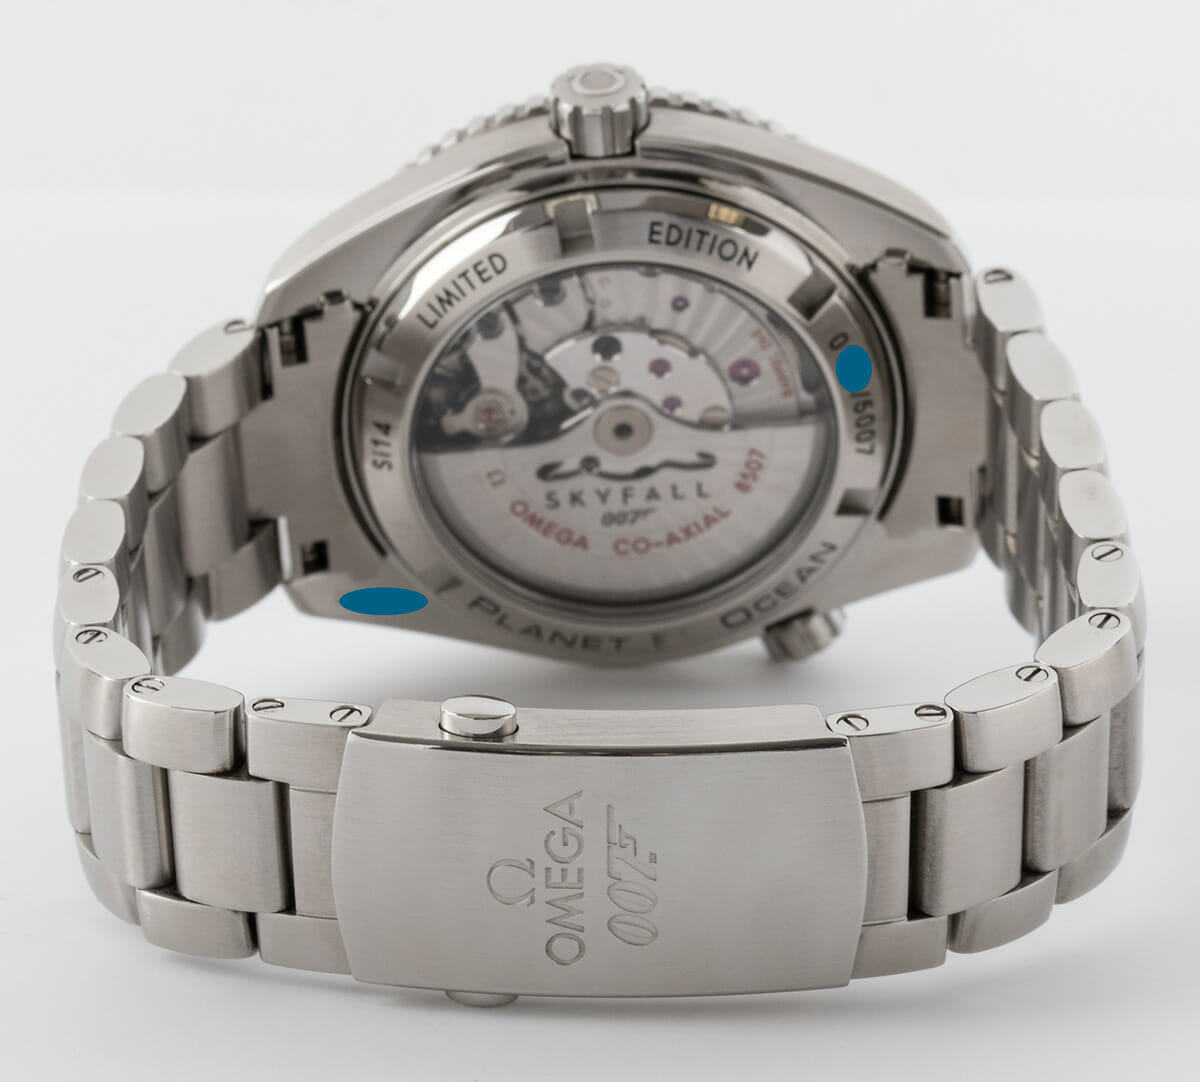 Rear / Band View of Seamaster Planet Ocean 'Skyfall' Limited Edition